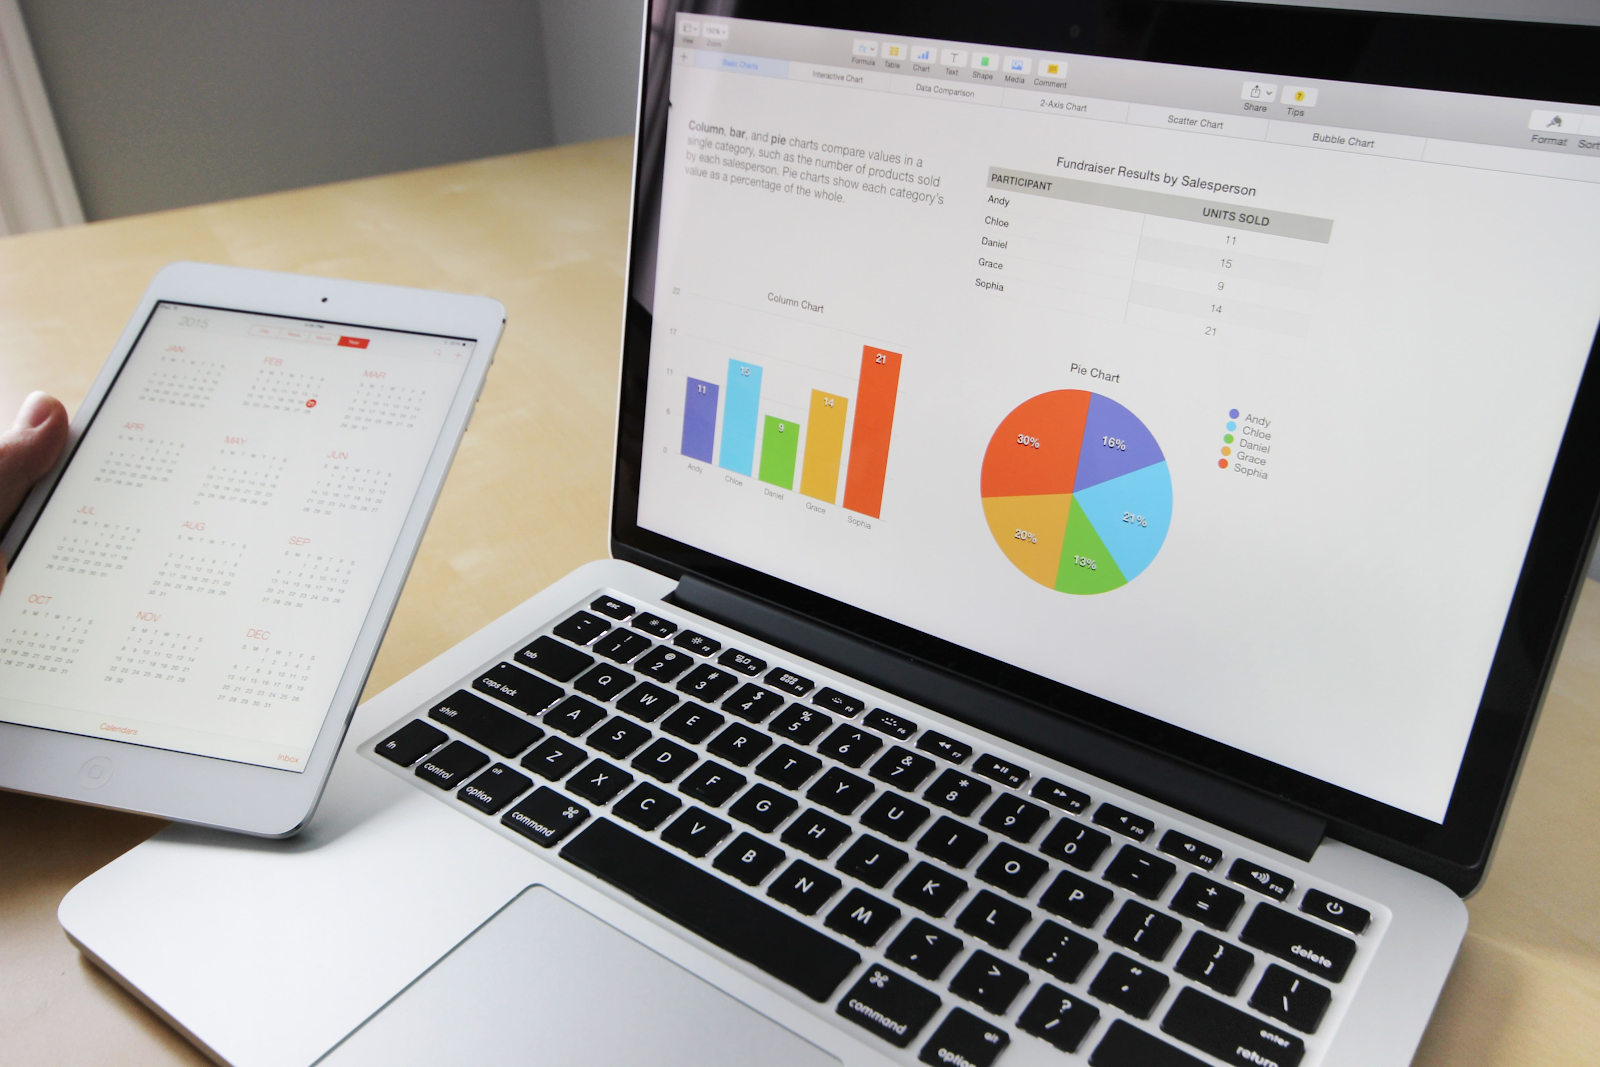 Learning Reporting tools like Tableau